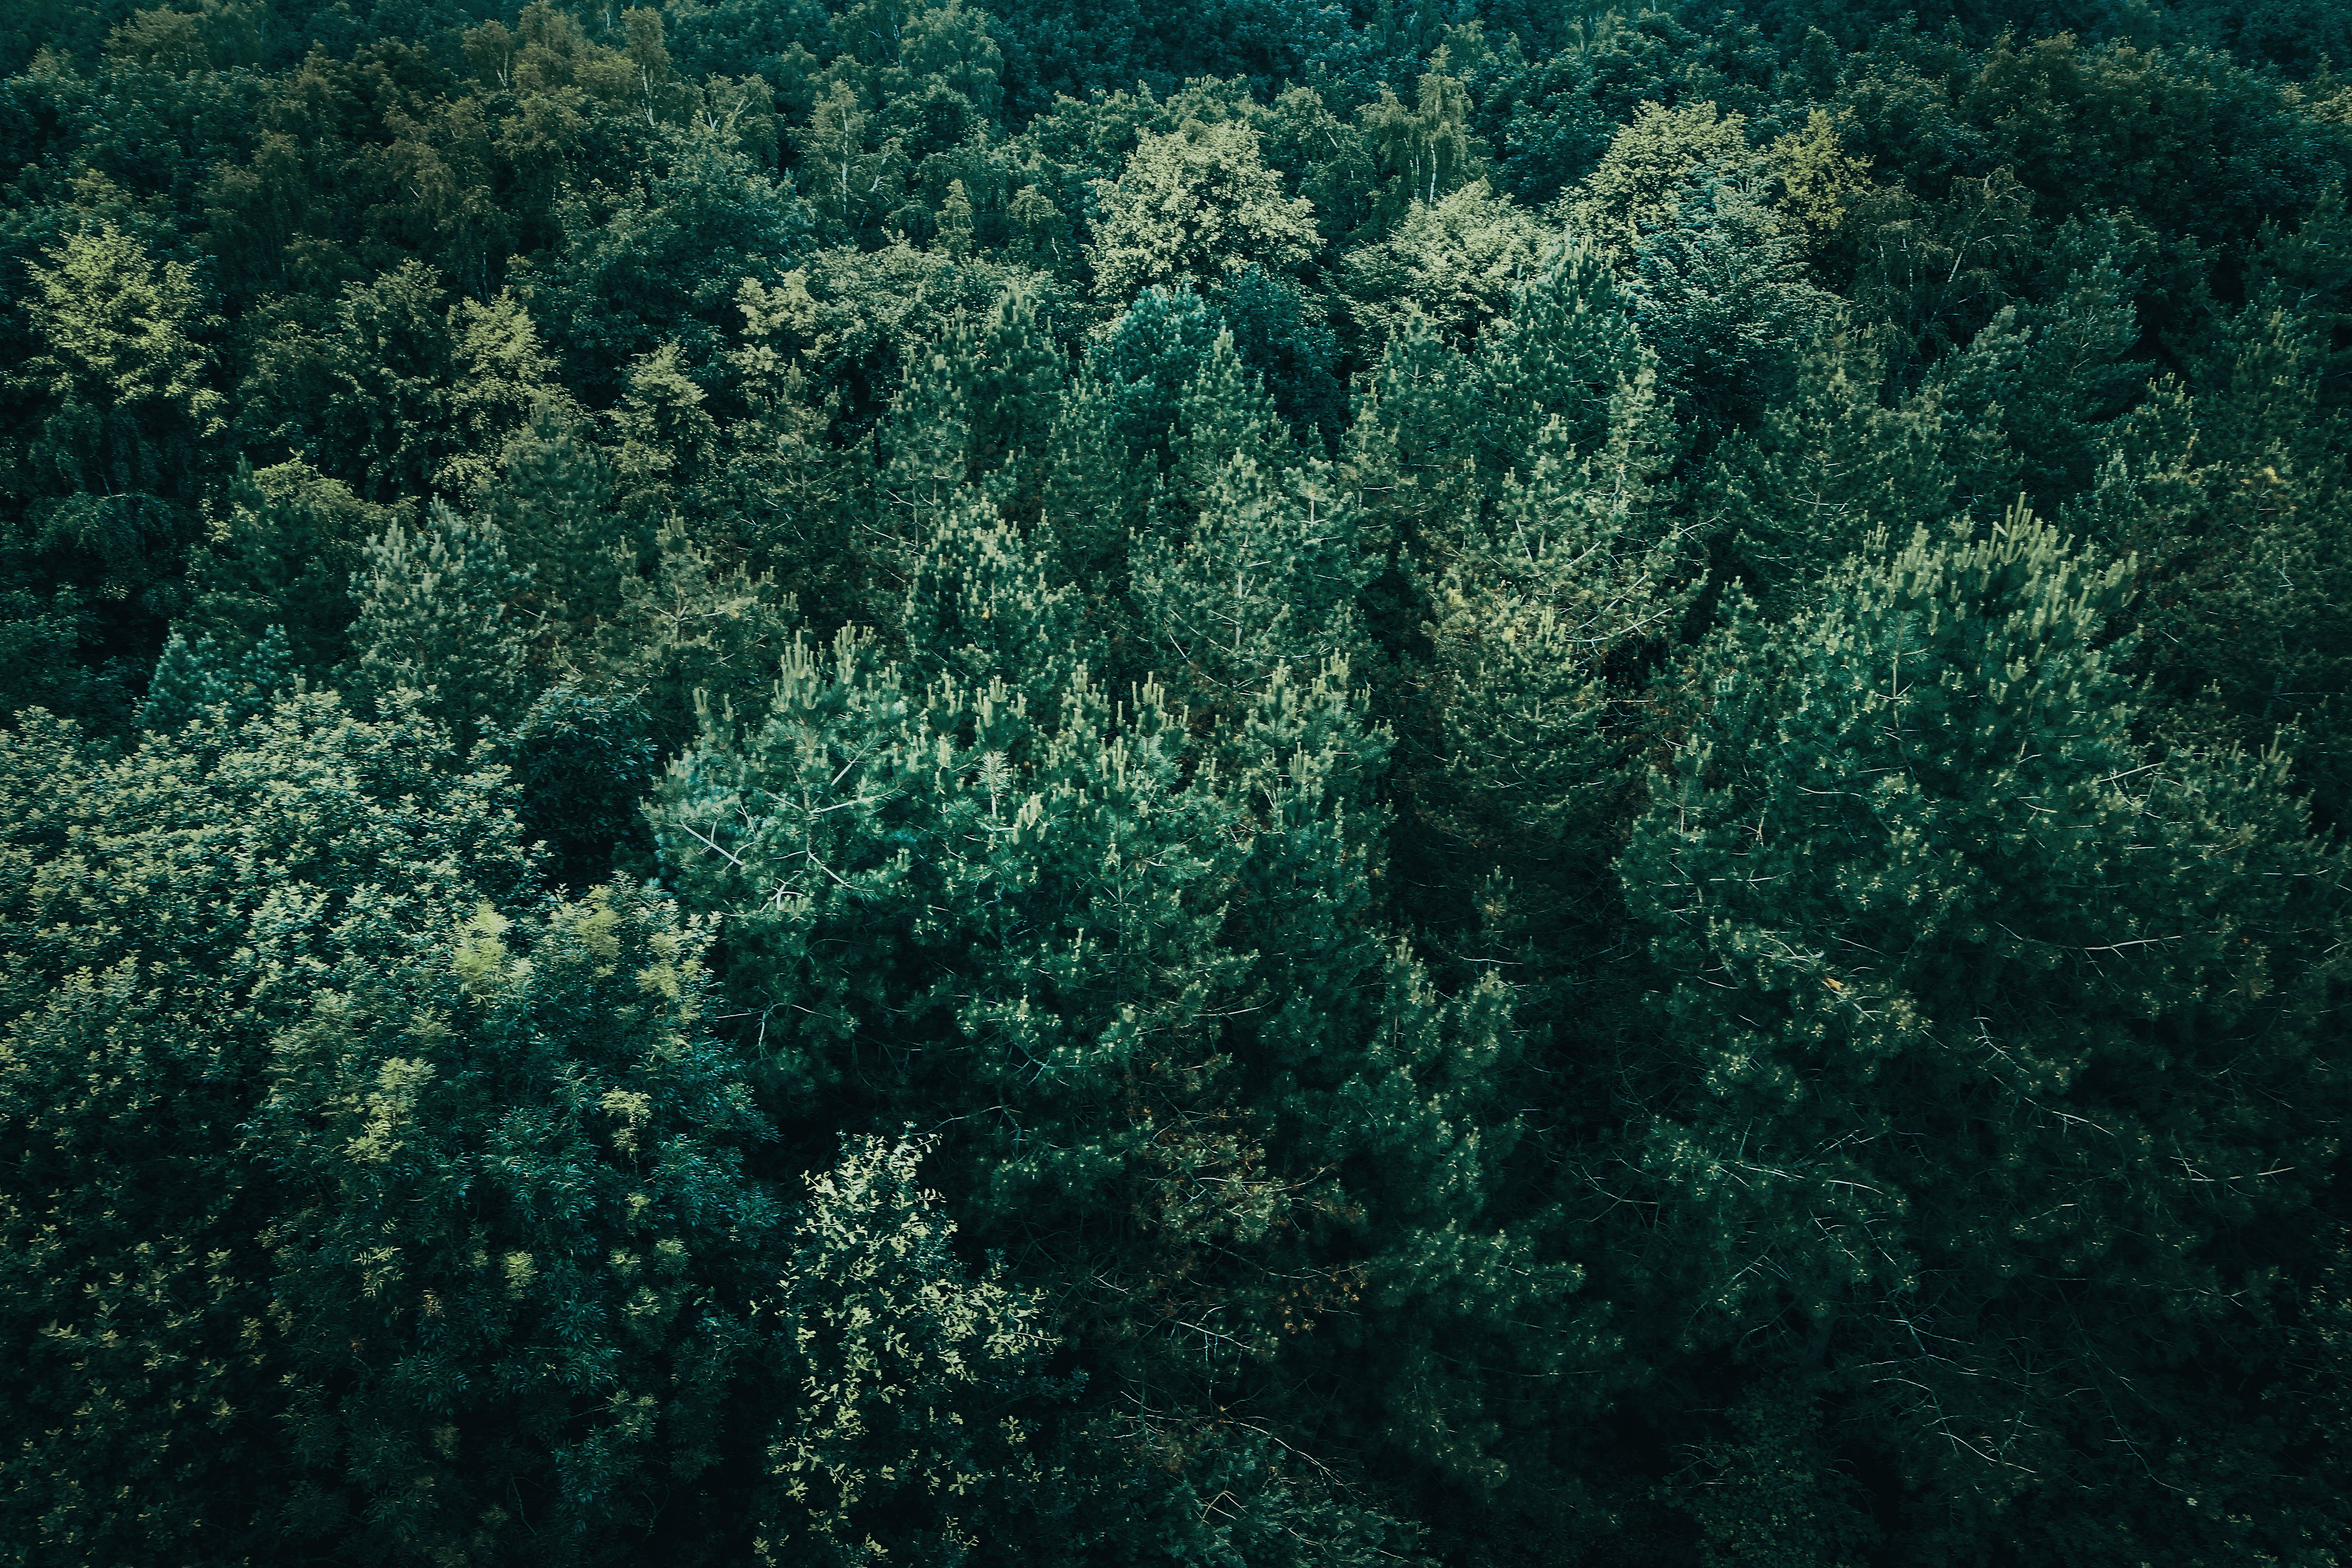 High Angle View of Green Leafed Trees